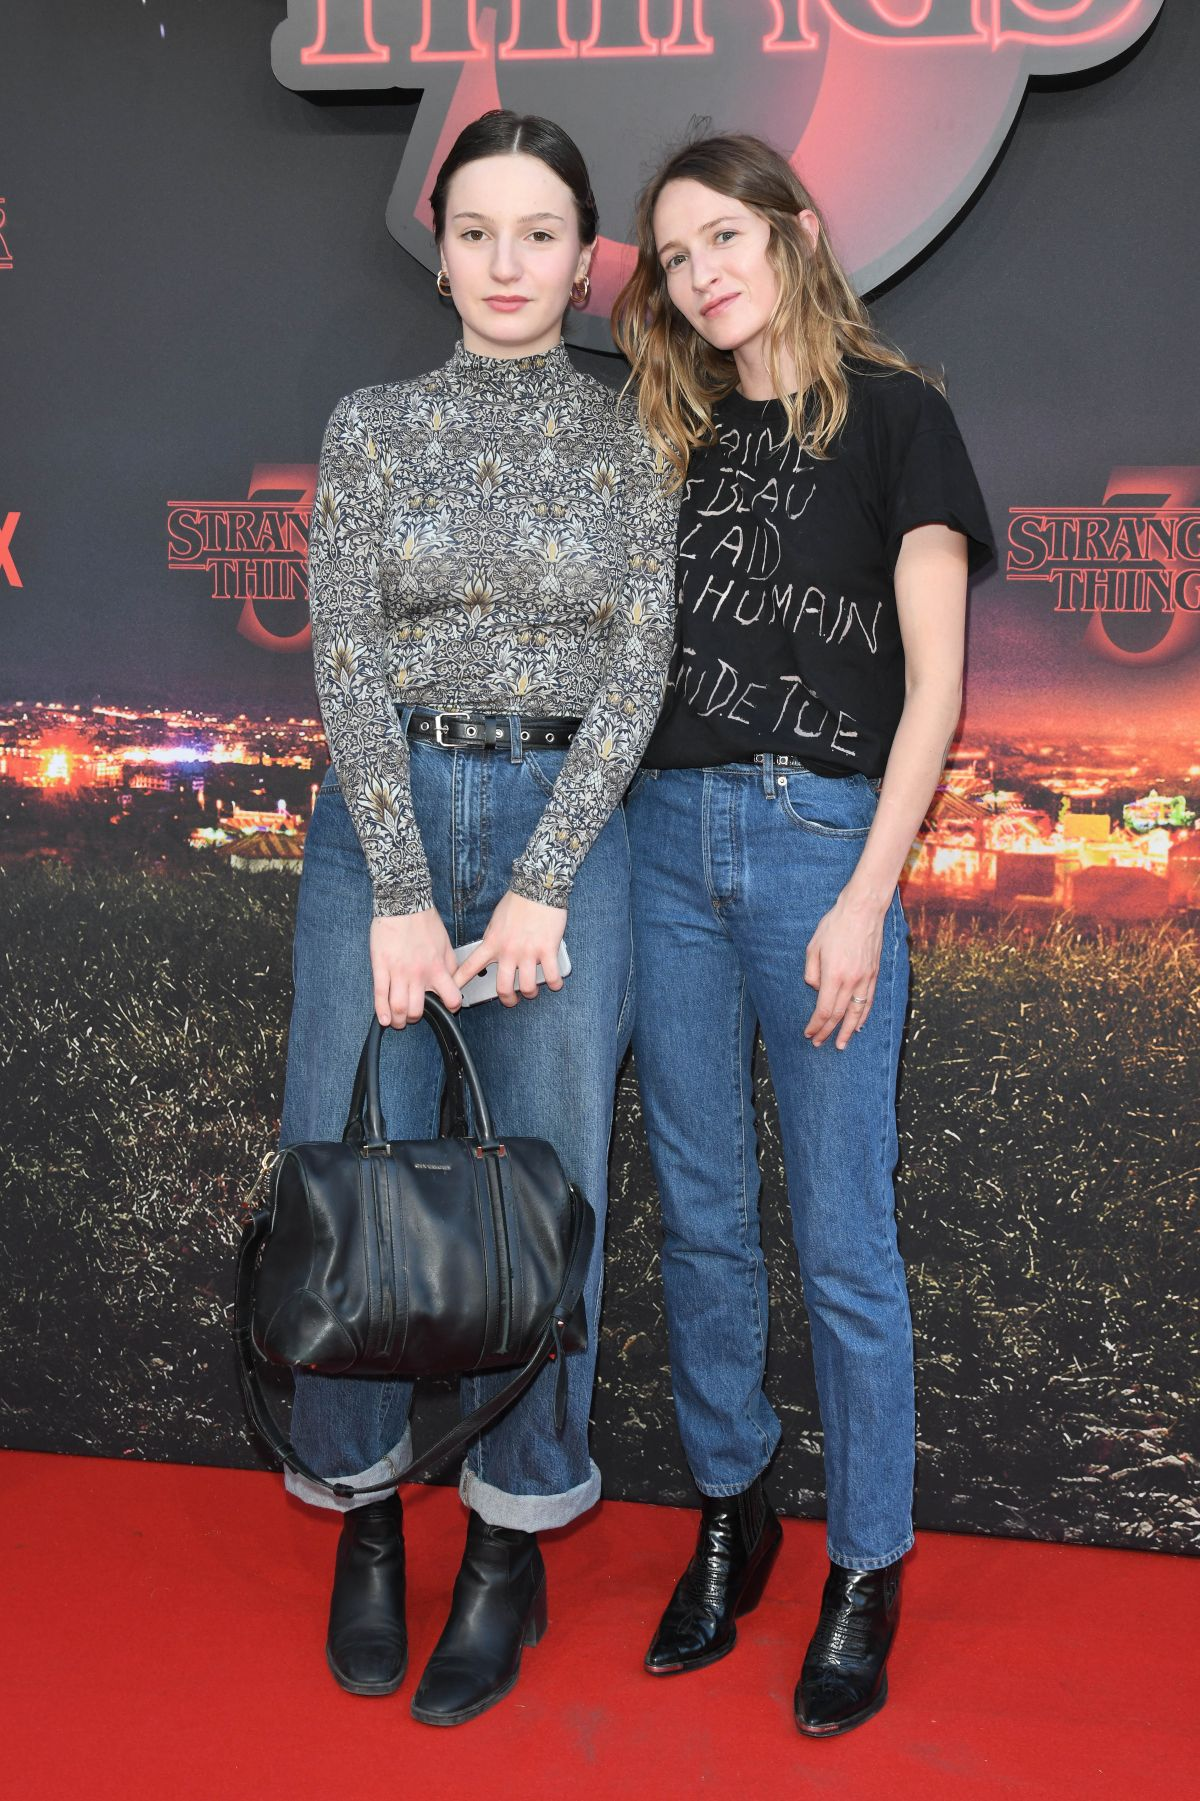 CHRISTA THERET at Stranger Things, Season 3 Premiere in Rome